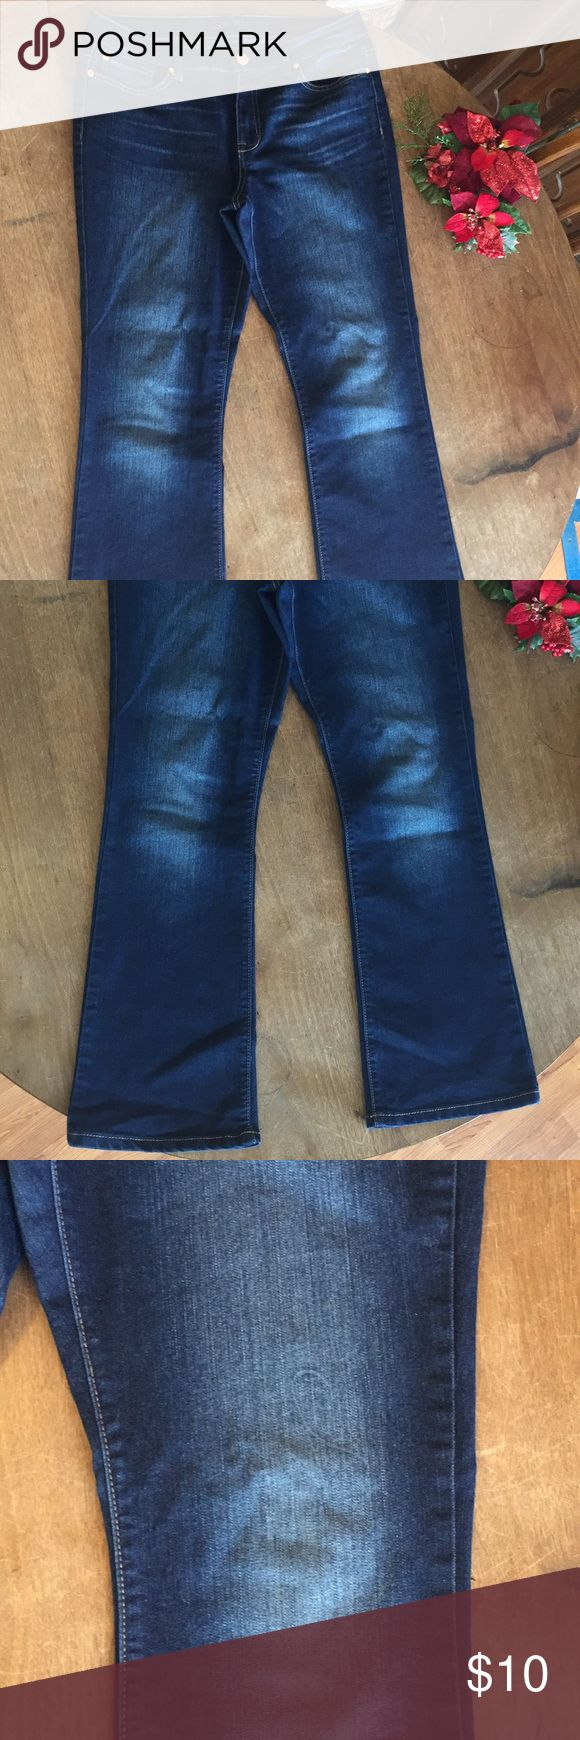 "Code Bleu soleil bootcut Jeans 10 petite Great stylish jeans in a dark blue with stylish fading. Appears a thread got got on the jeans when the manufacturer dyed them, pictured. Minimally noticeable. Nice bootcut silhouette. 29"" inseam. 🎁Bundle for a discount Code Bleu Jeans Boot Cut"